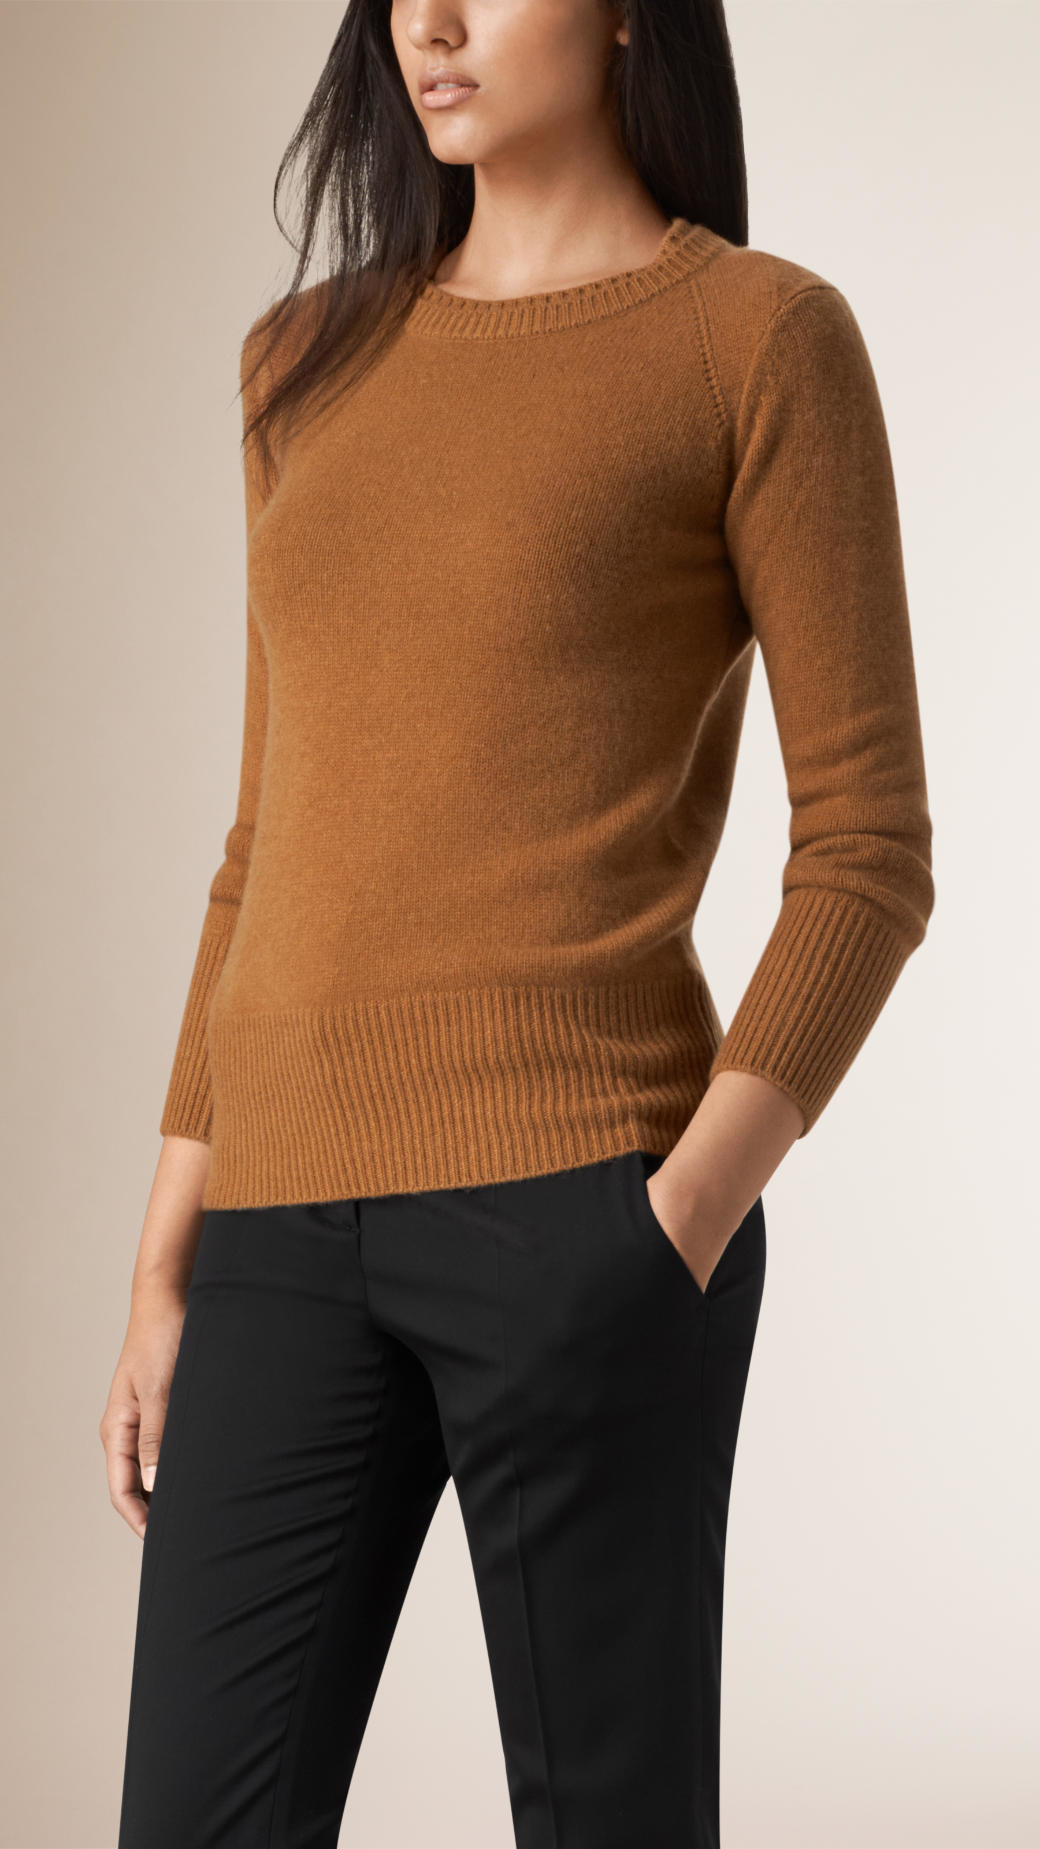 Burberry Crew Neck Cashmere Sweater Camel in Brown | Lyst